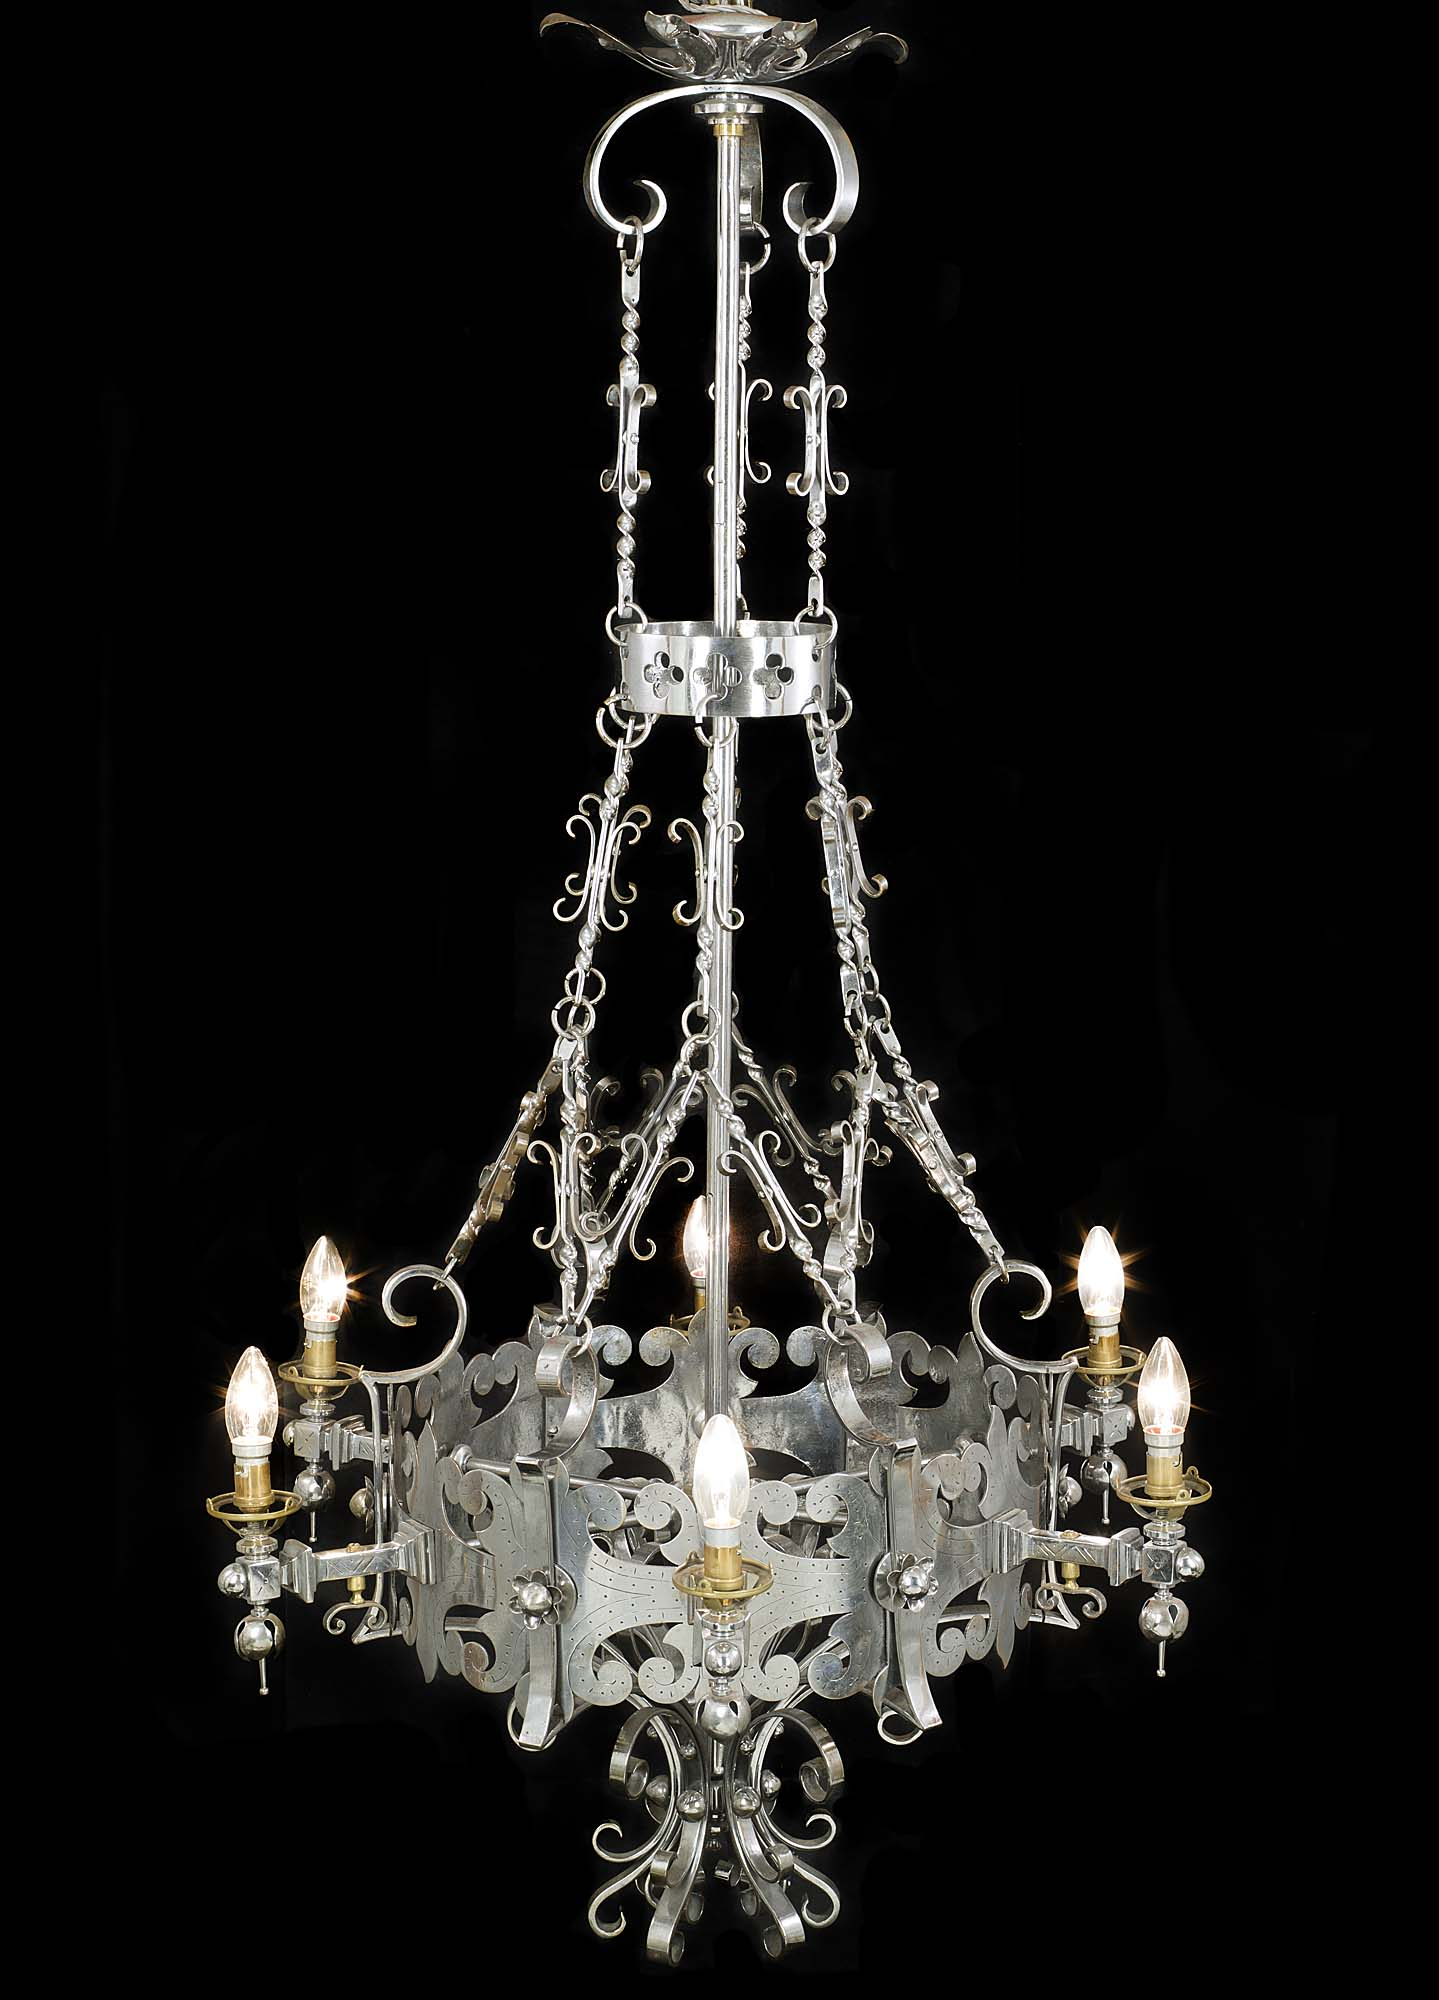 A superb cut steel antique Gothic Revival chandelier